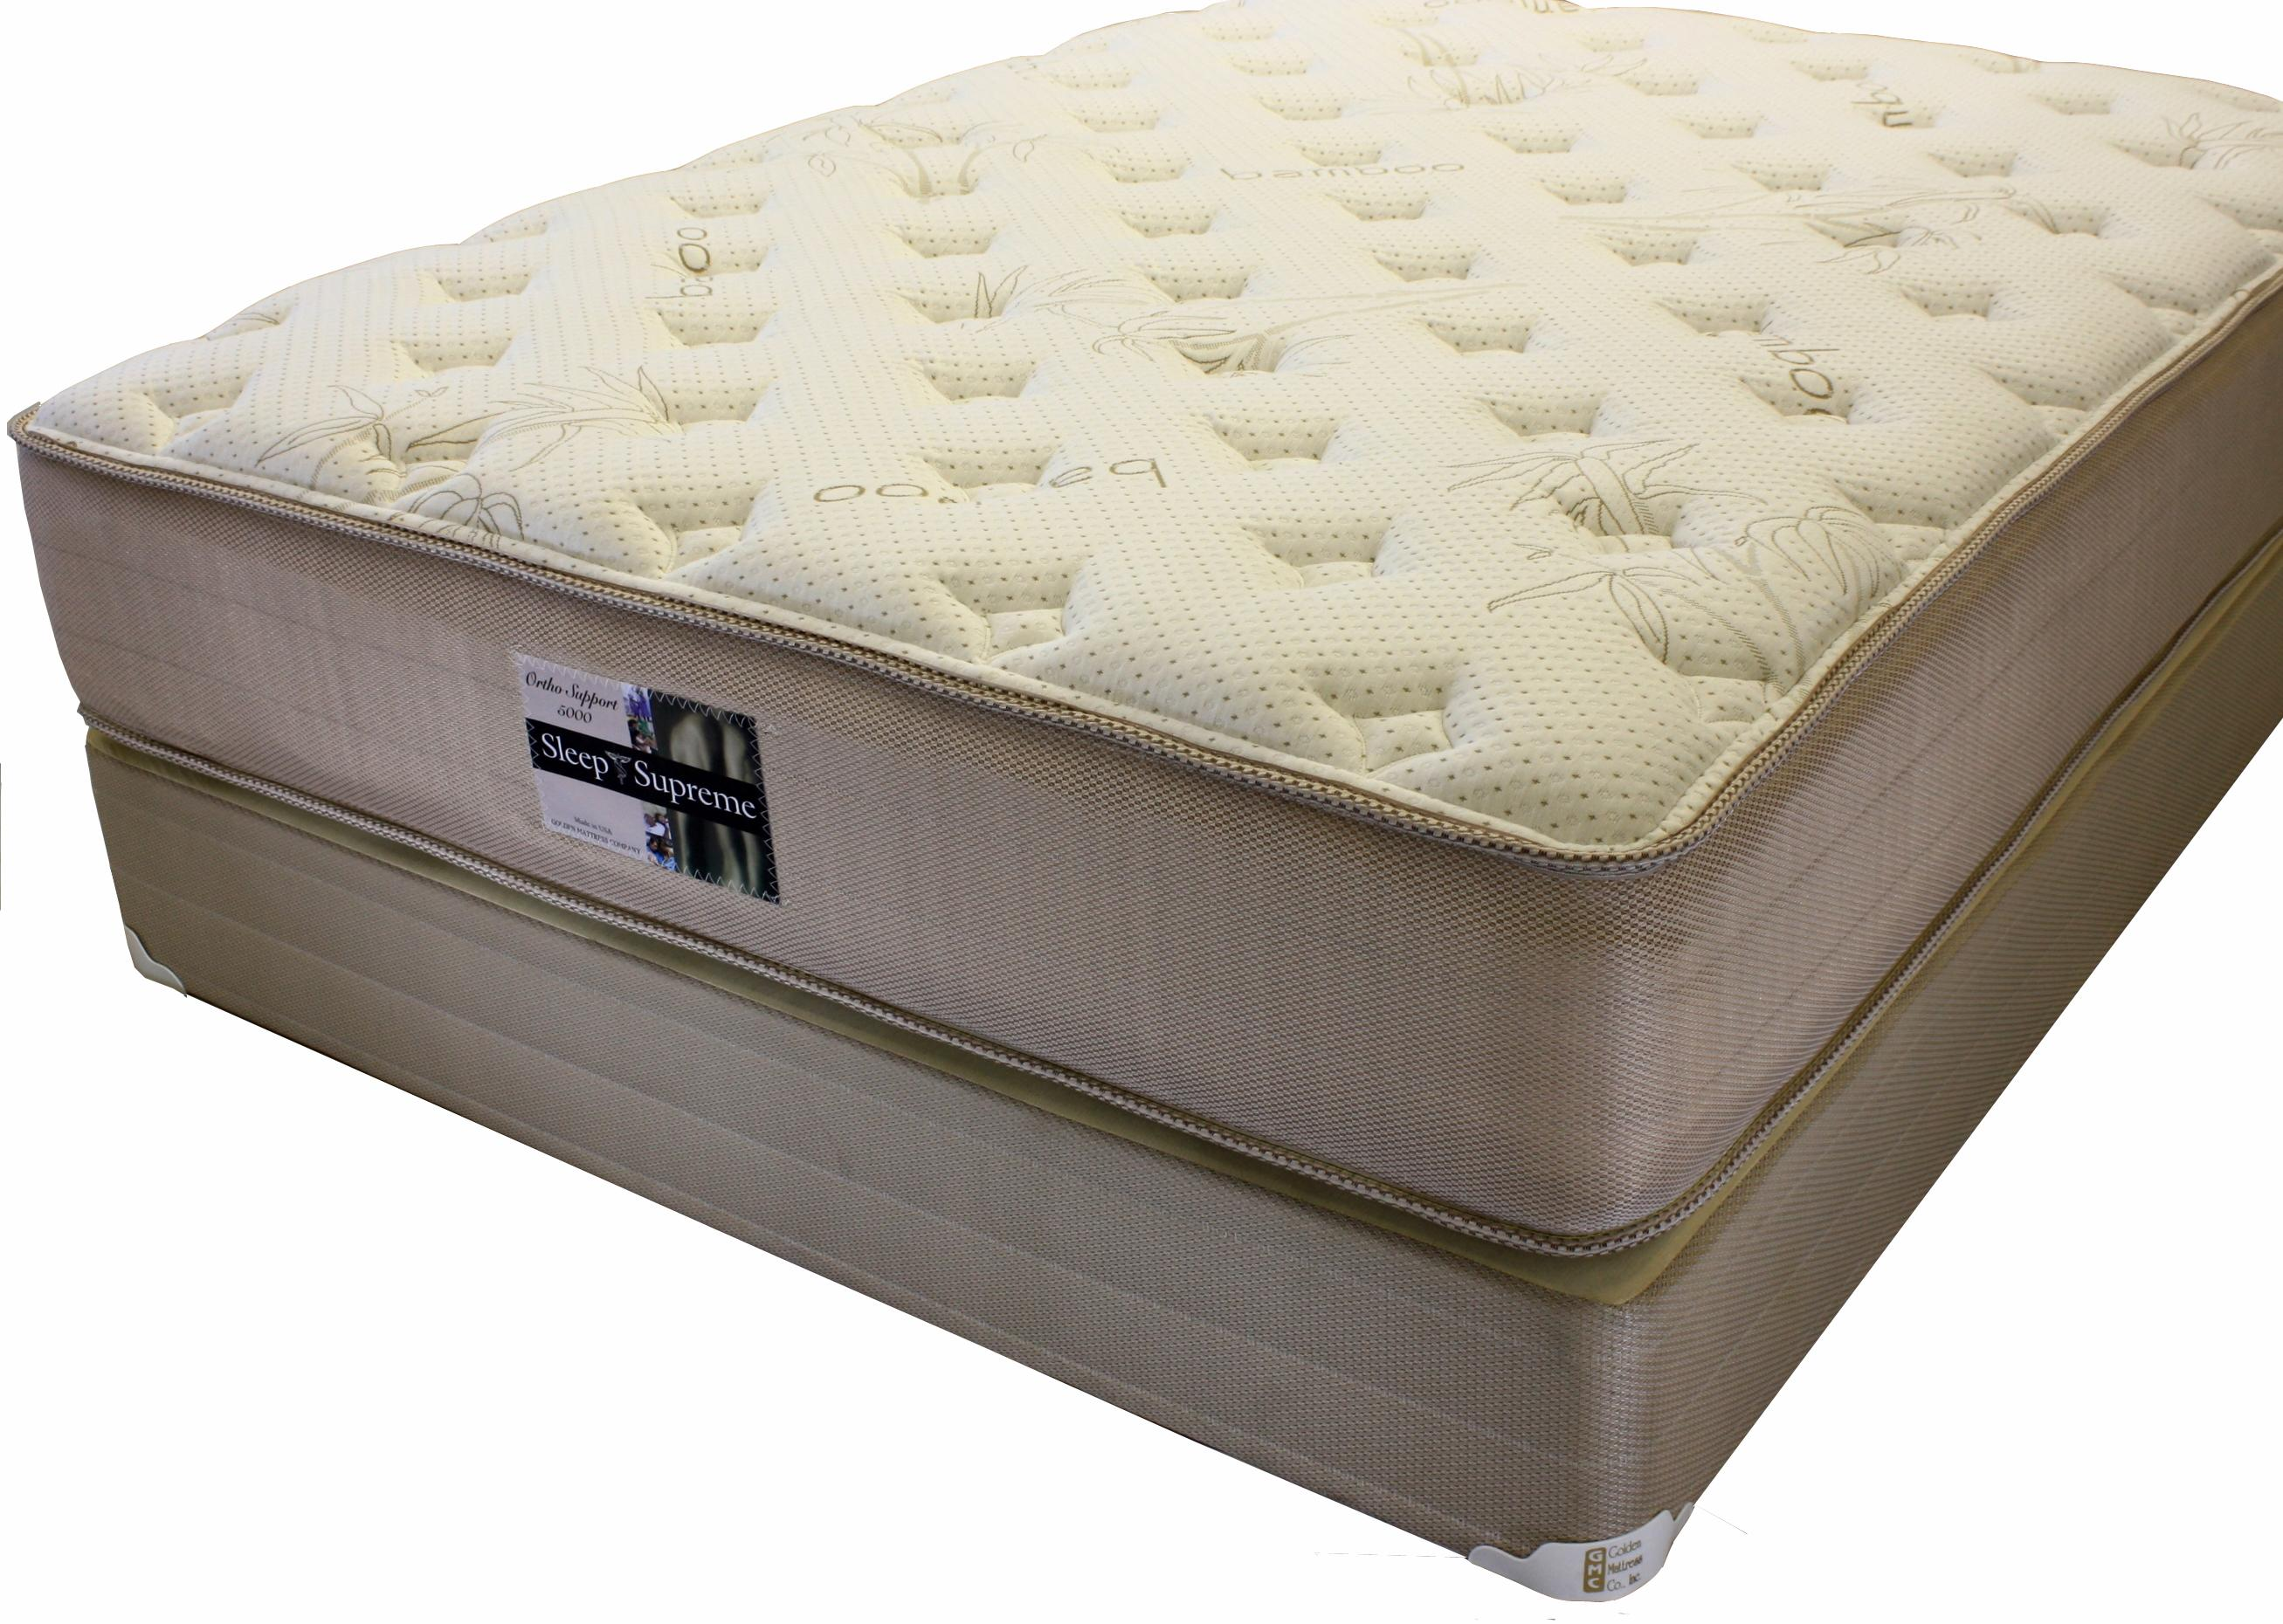 golden mattress company ortho support 5000 full plush mattress dream home furniture mattress. Black Bedroom Furniture Sets. Home Design Ideas